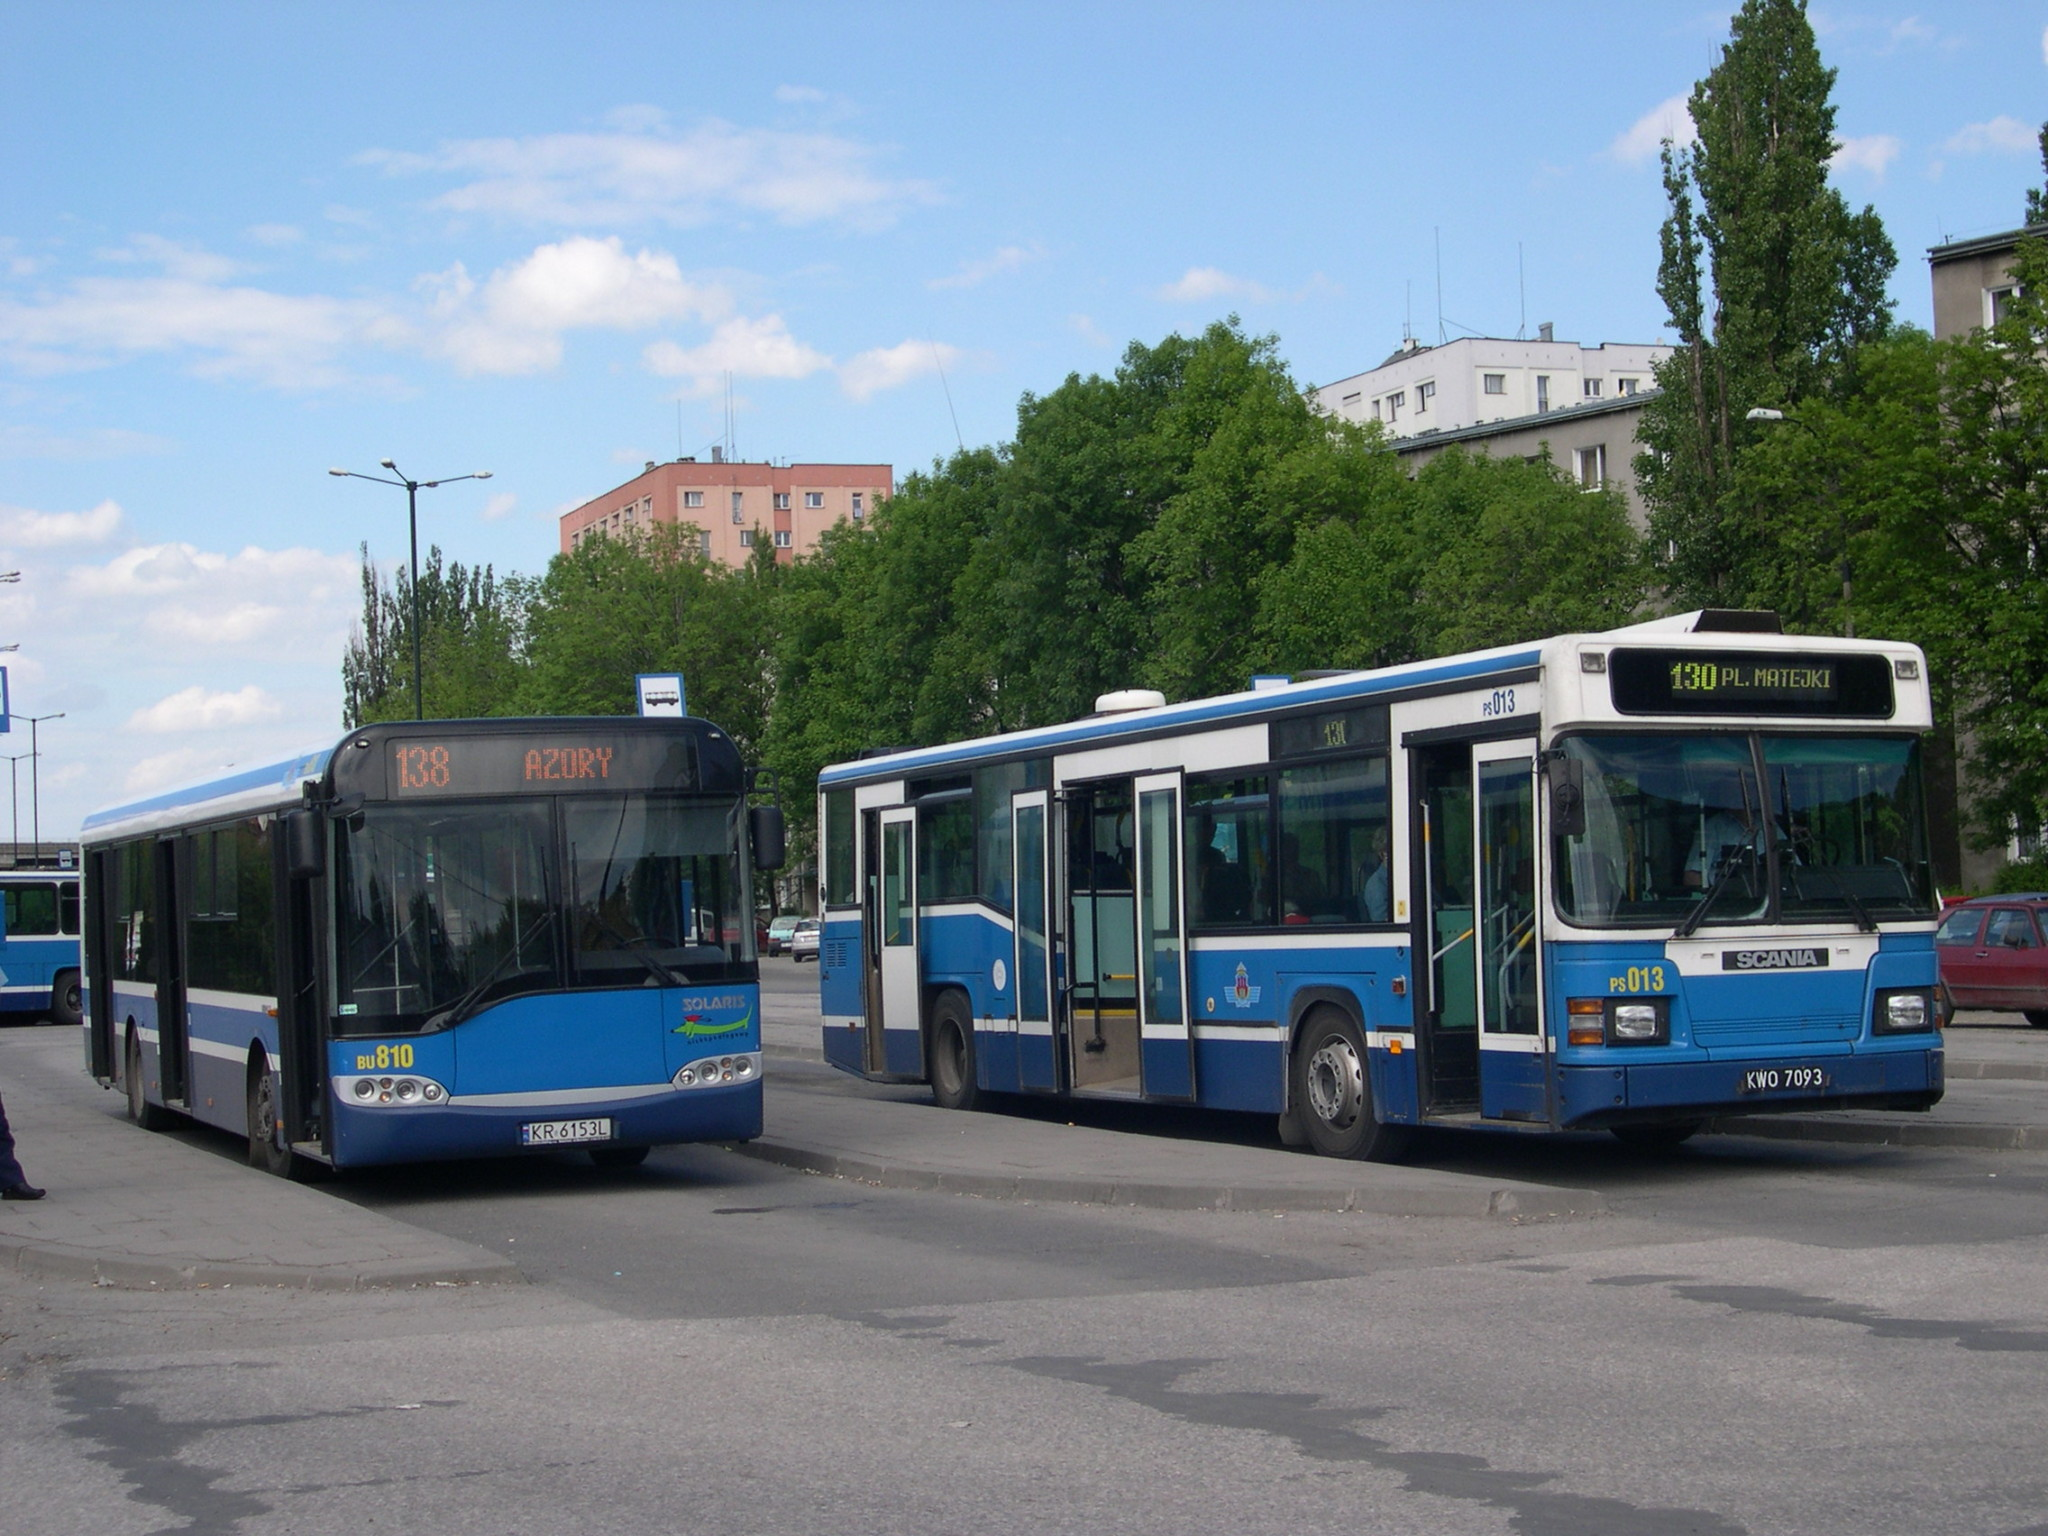 More buses and trams used to keep passengers apart during pandemic